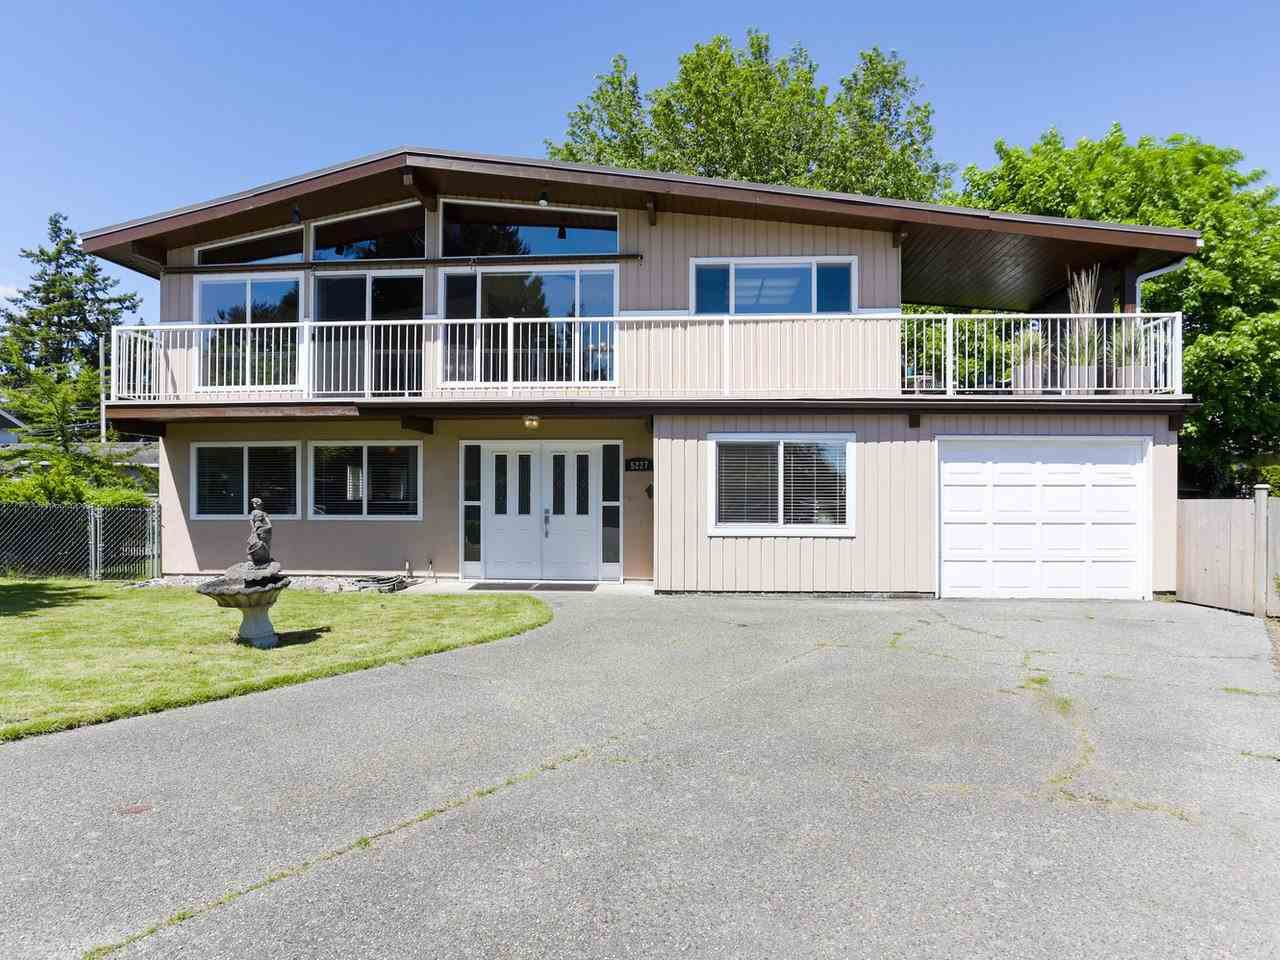 Main Photo: 5227 WALNUT PLACE in Delta: Hawthorne House for sale (Ladner)  : MLS®# R2456249